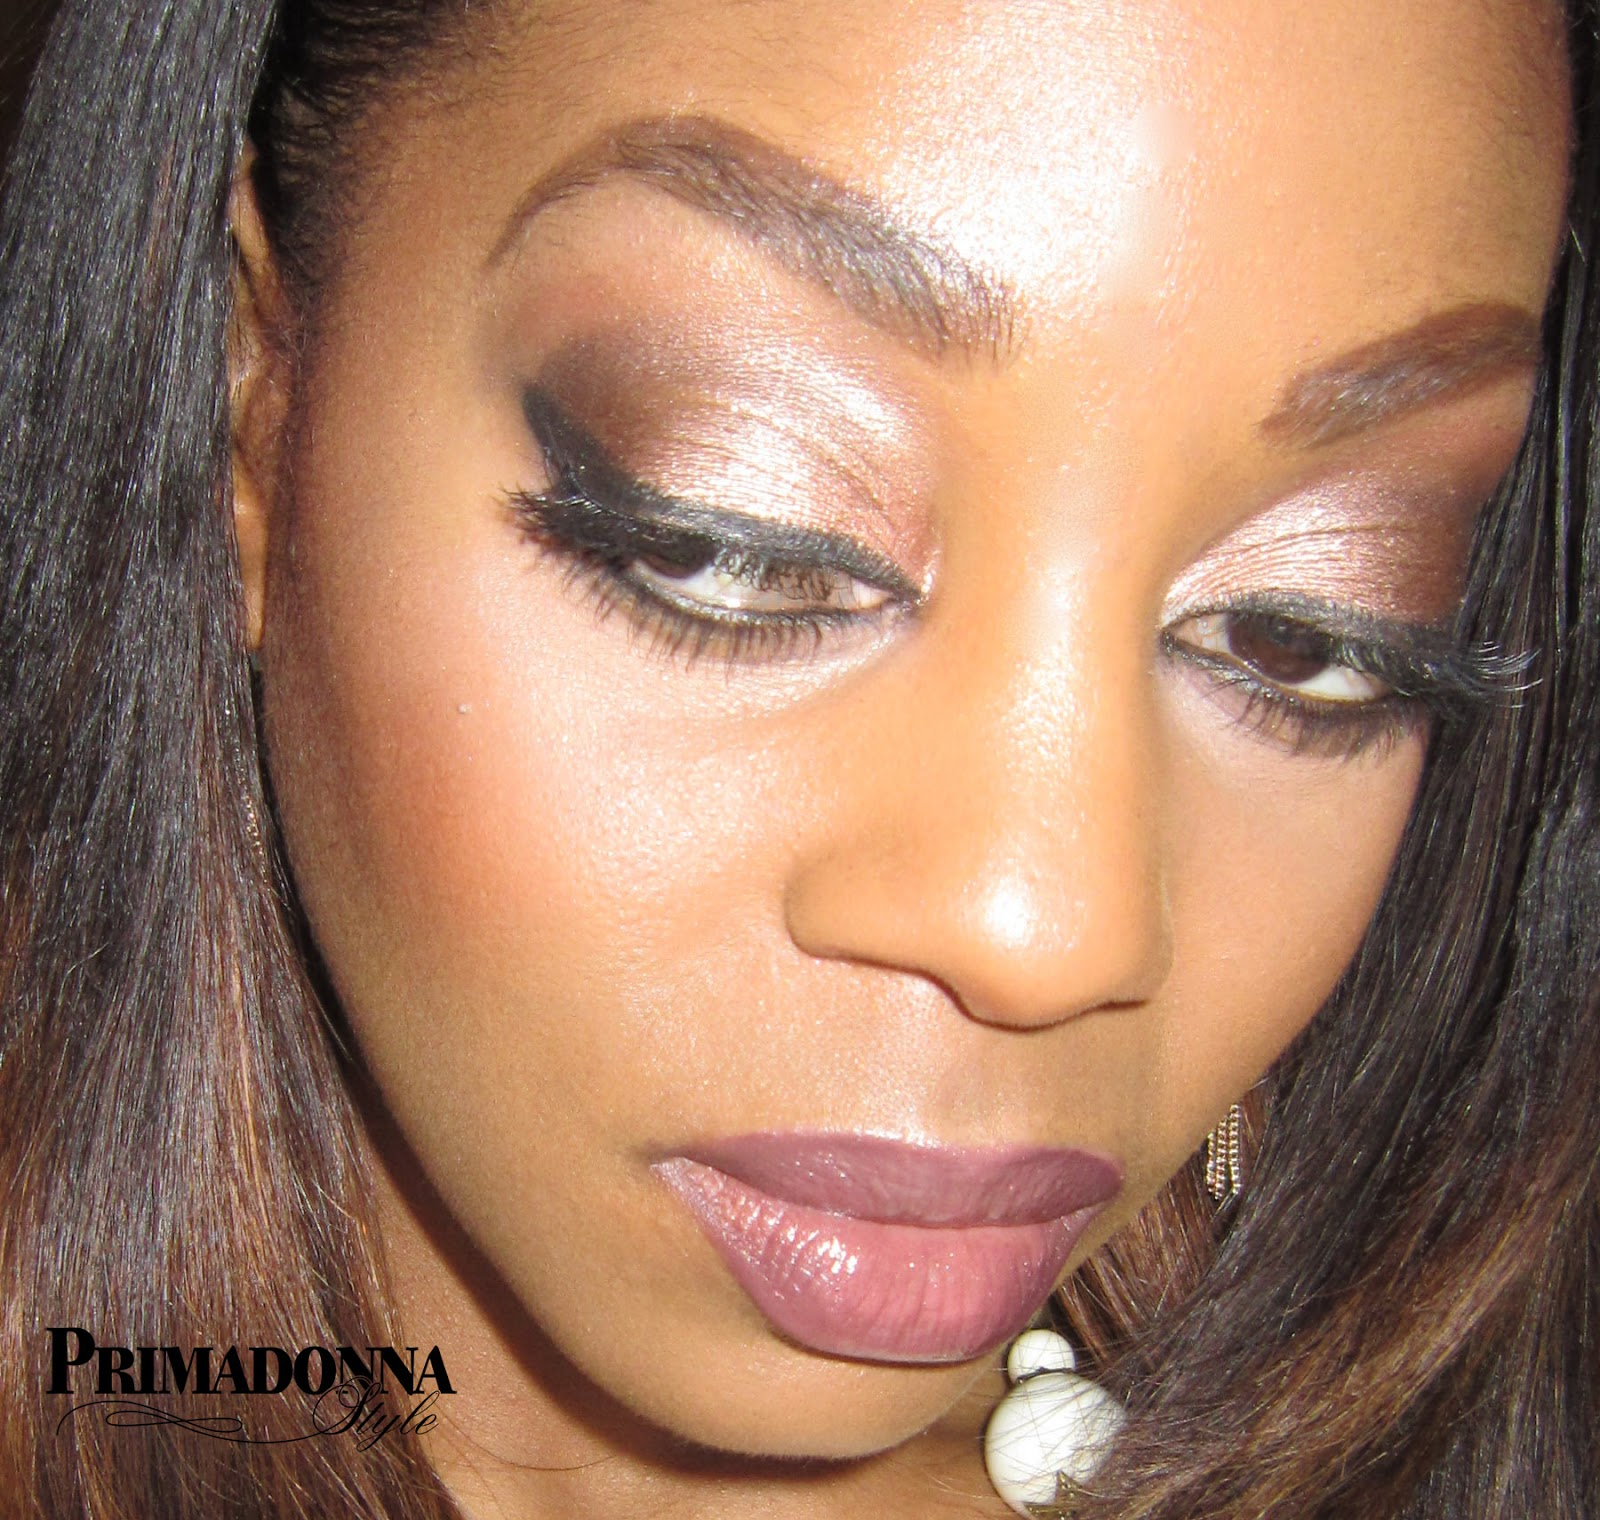 mixing luminizers and illuminators with foundation glowing dewy skin